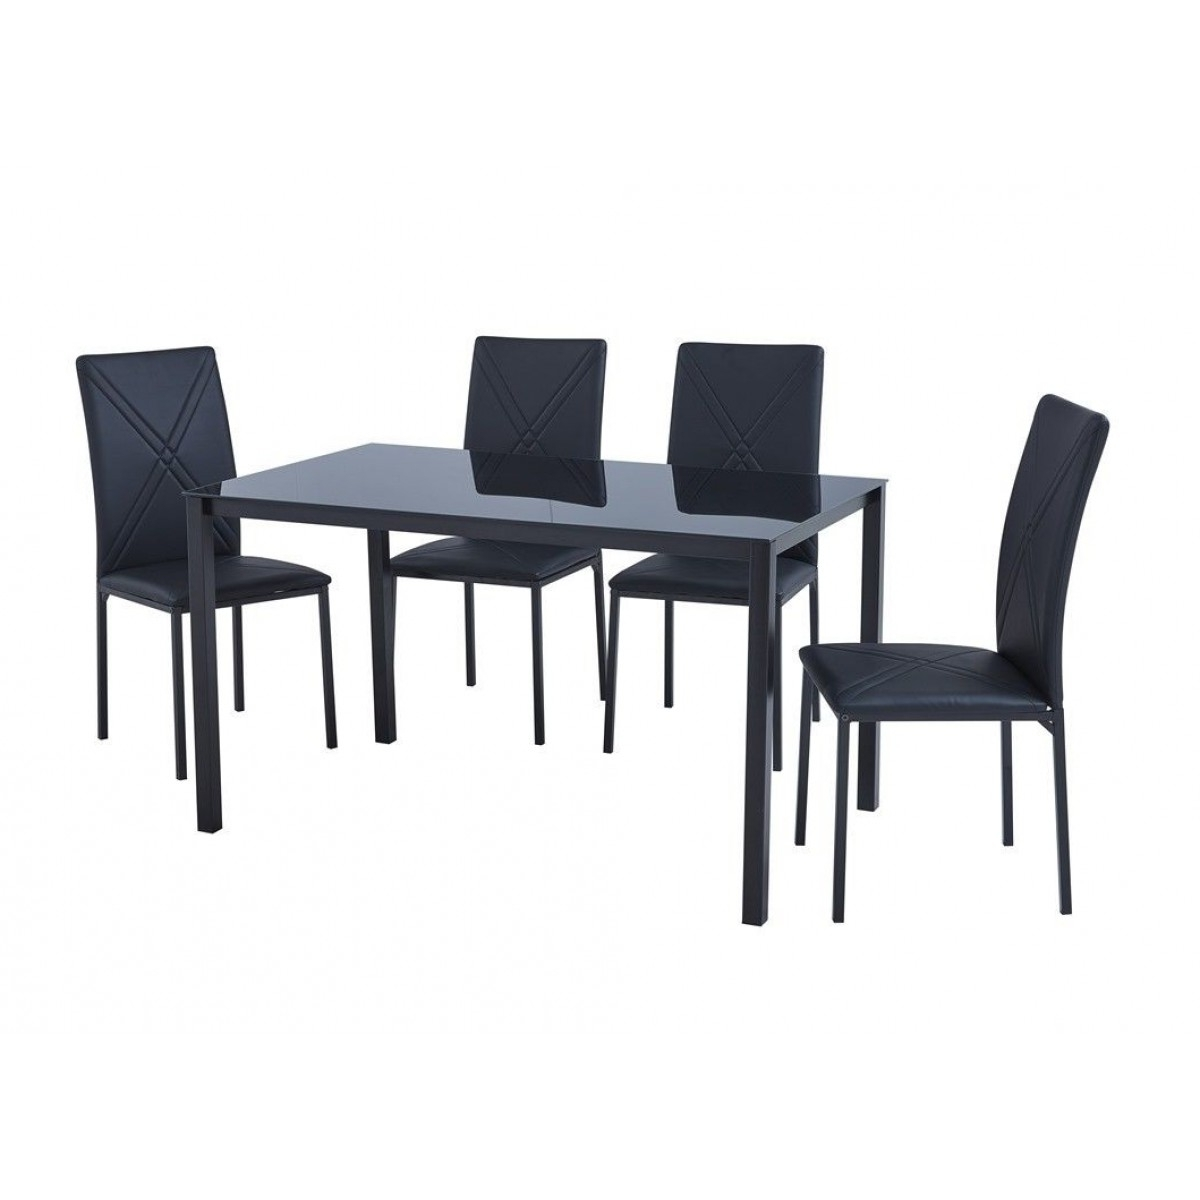 Luxury Black Glass Dining Table & 4 Faux Leather Chairs Set Inside Most Up To Date Black Glass Dining Tables And 4 Chairs (View 21 of 25)